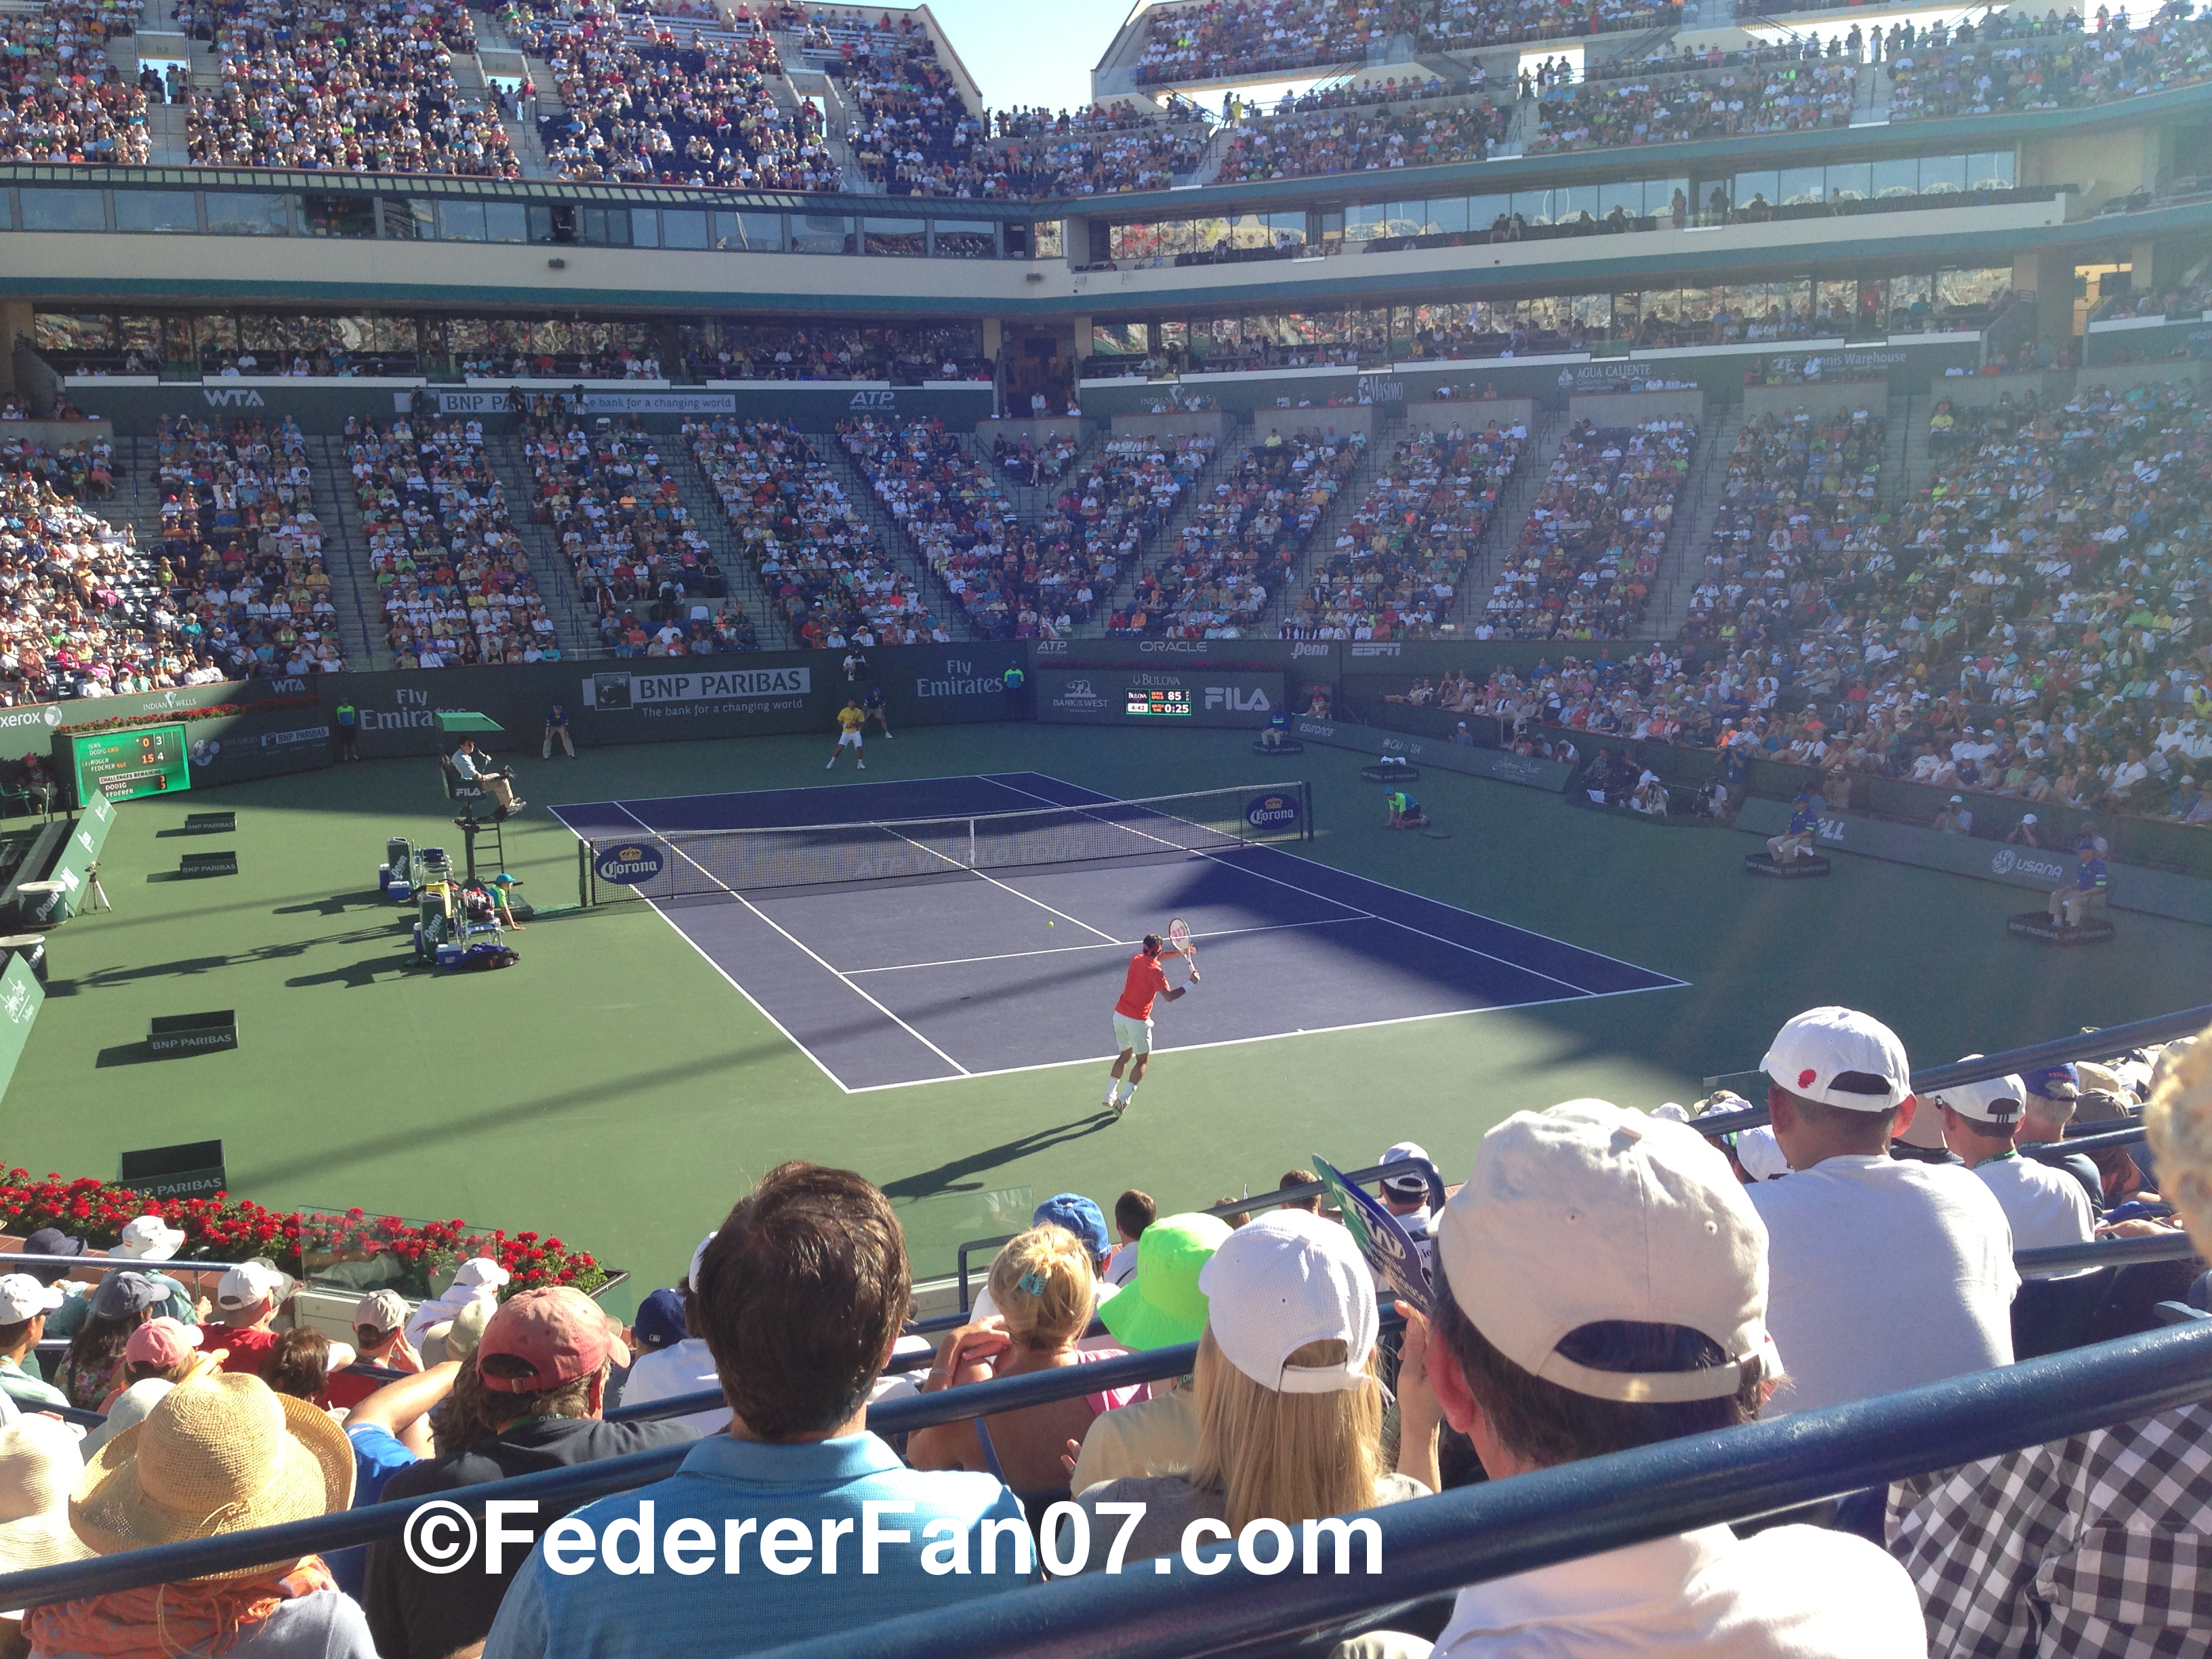 Roger Federer at 2013 BNP Paribas Open in Indian Wells. All photos and video taken by FedererFan07. Go to https://federerfan07.com for more.